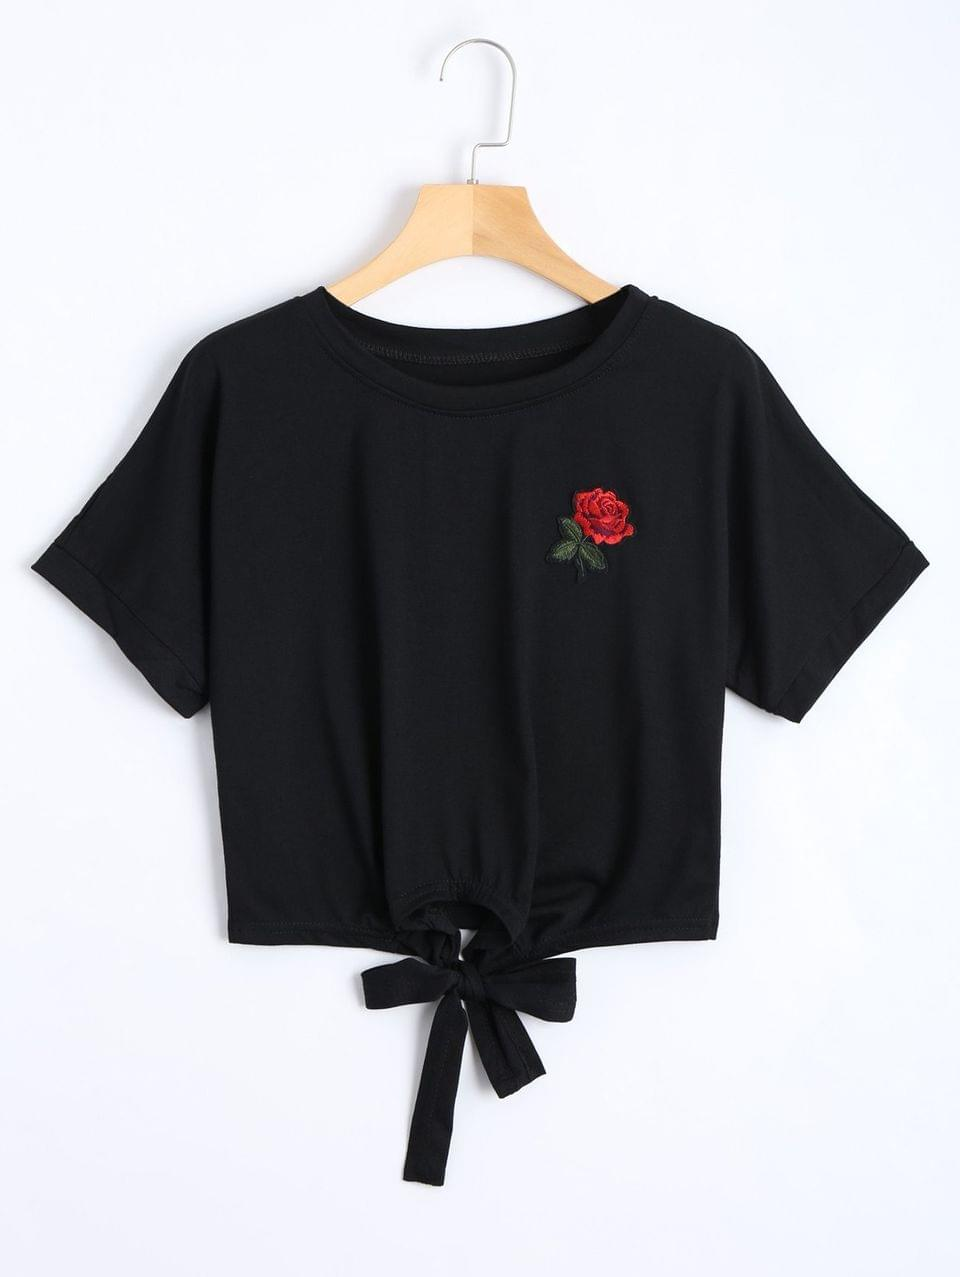 Women's Bow Tied Floral Embroidered Cropped Top - Black M